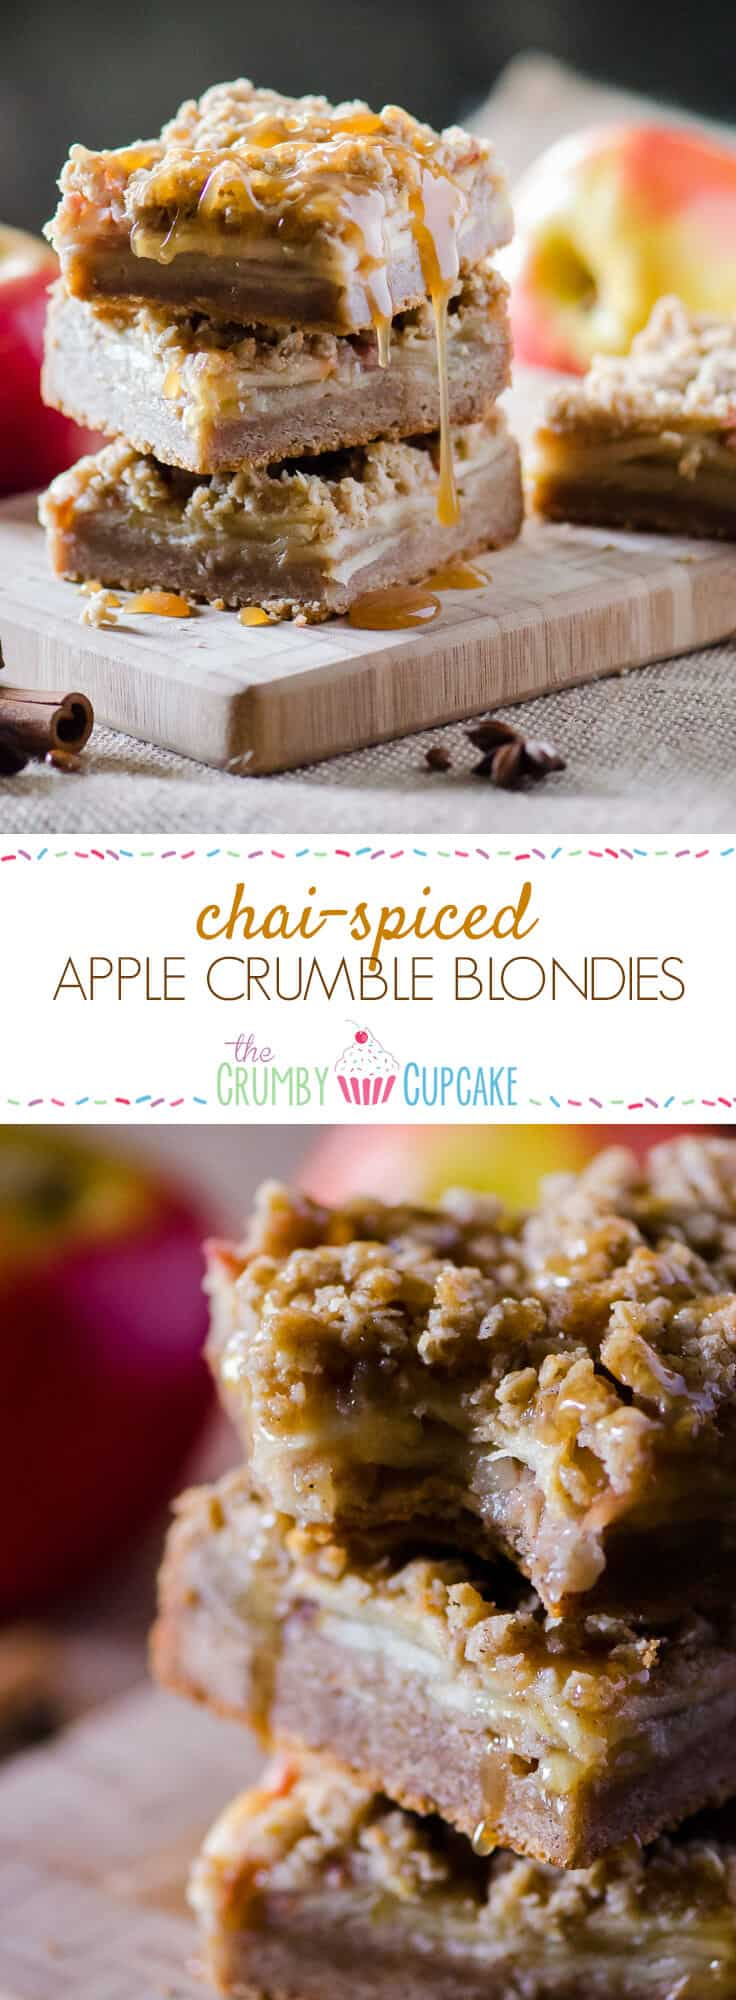 Blondies, fall style! Chai-Spiced Apple Crumble Blondies combine the flavors of the season with the brownie's brown sugared-little sister.